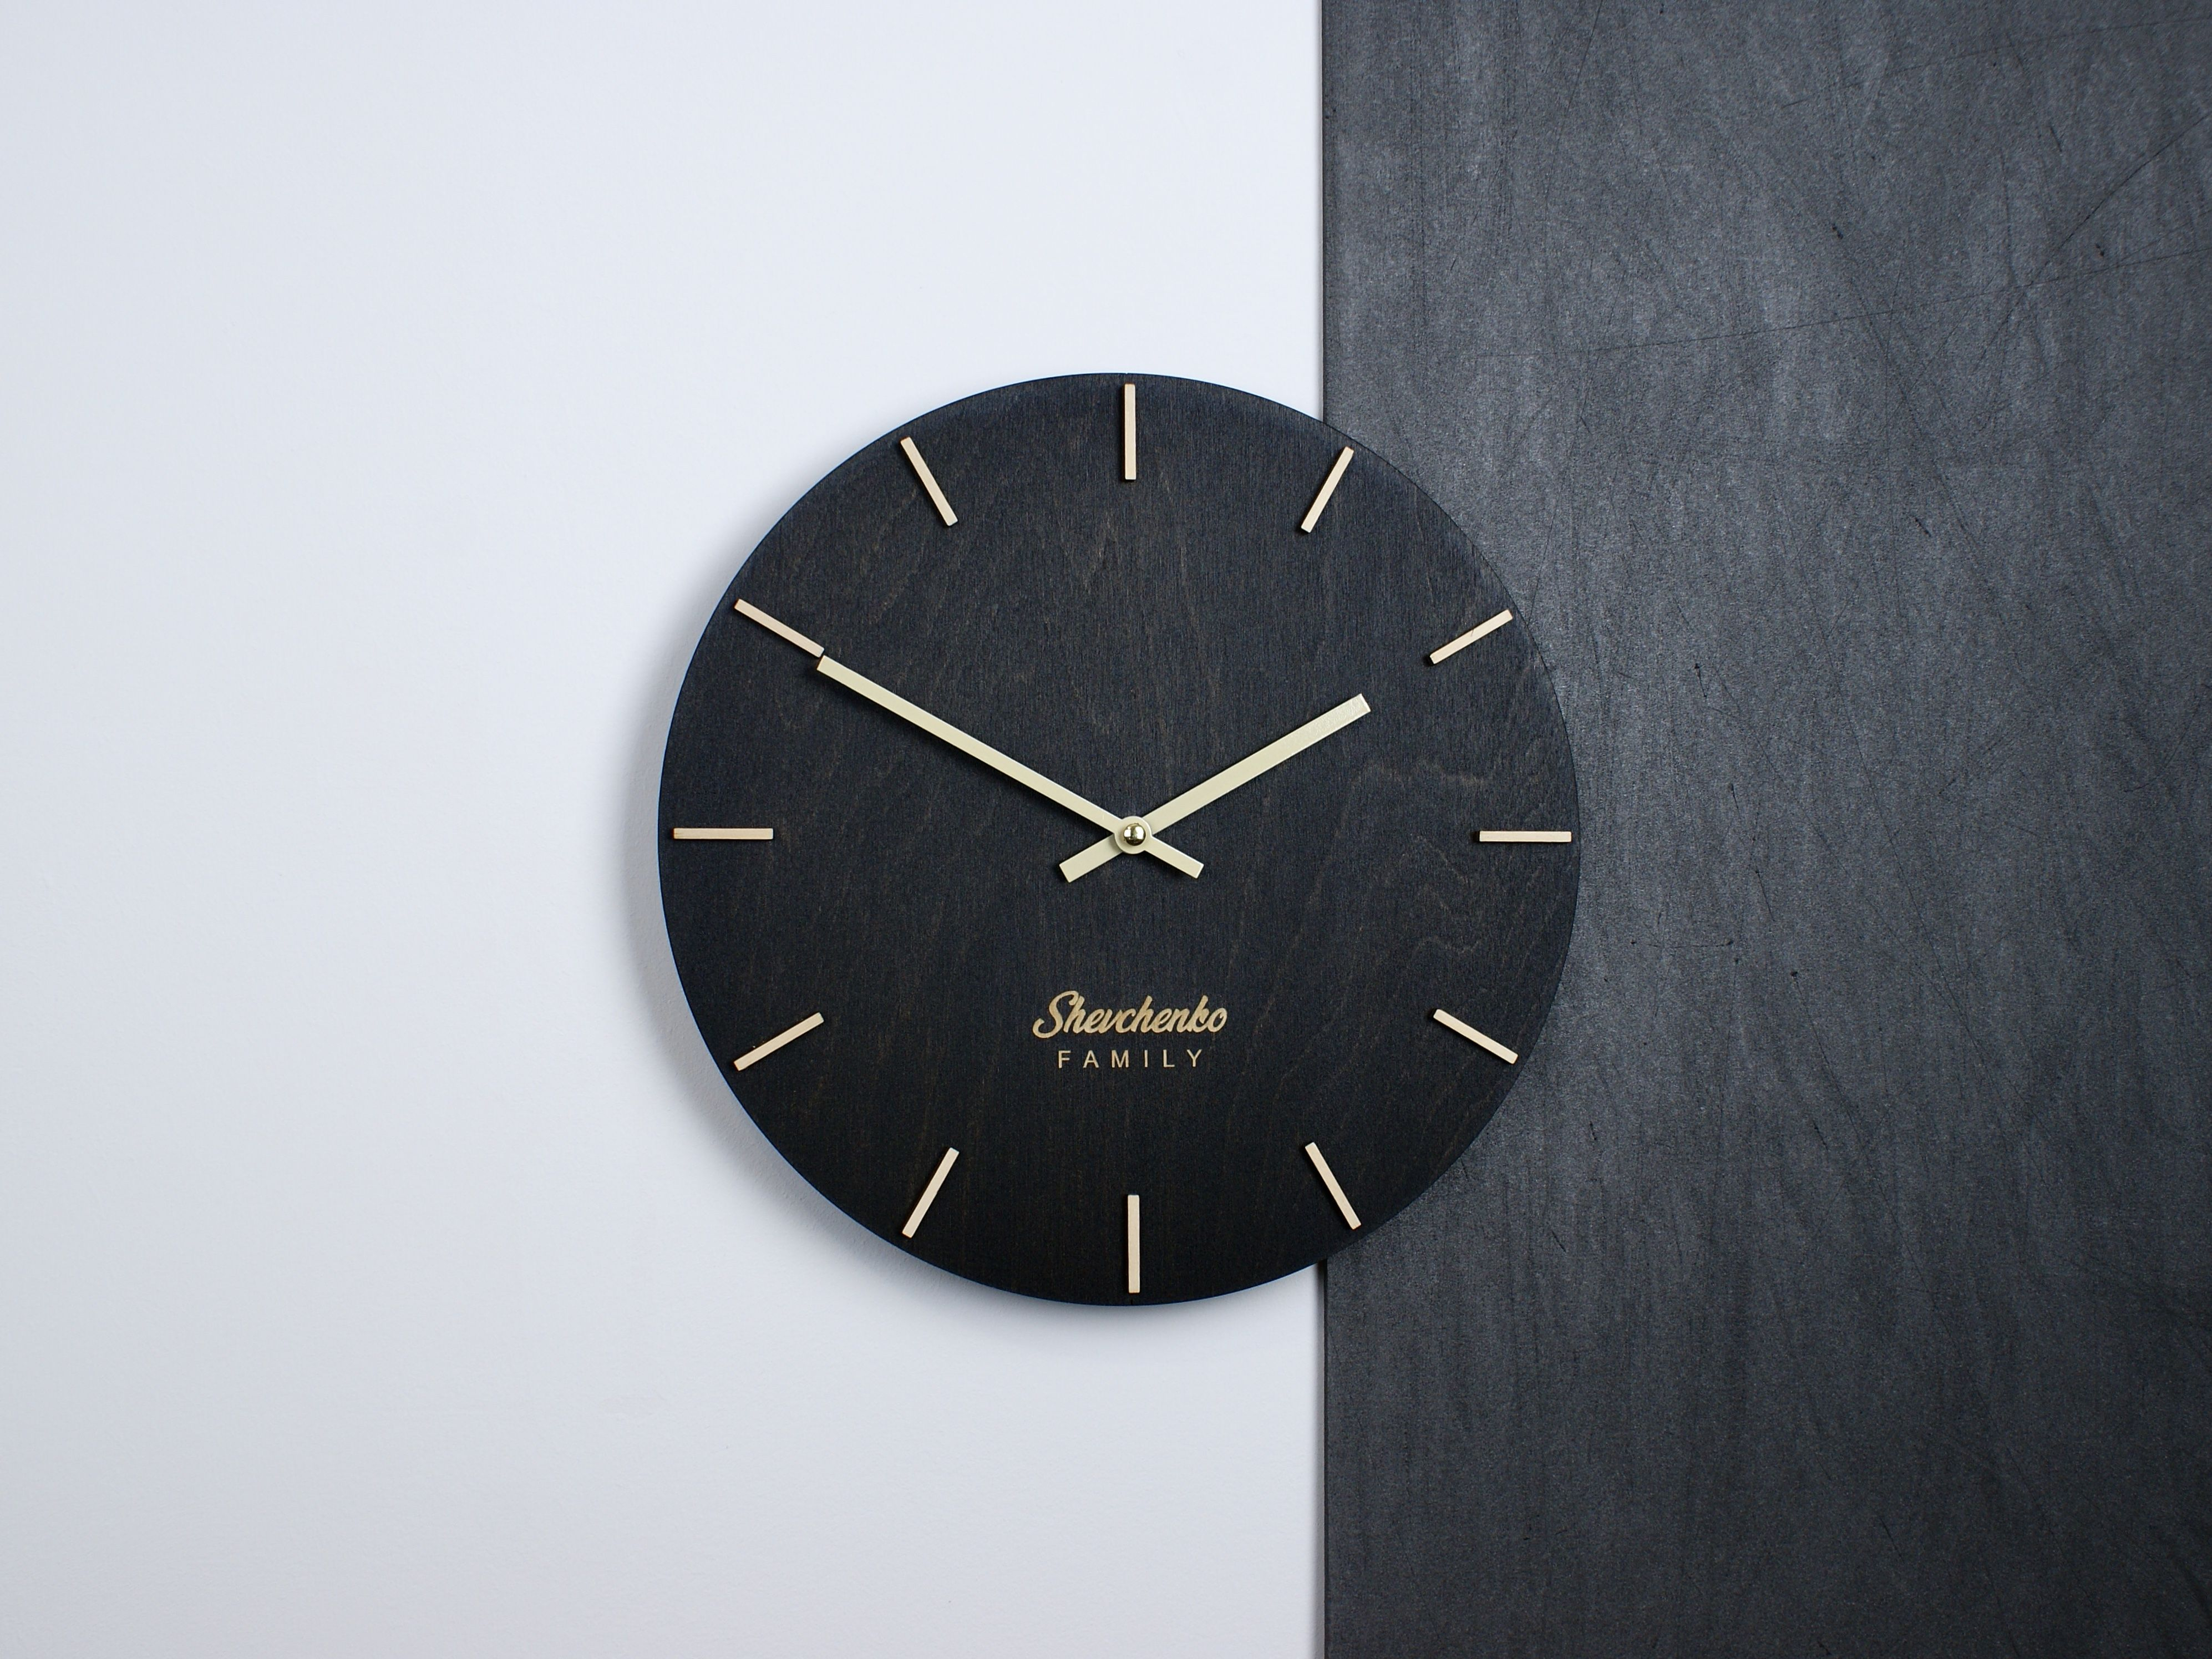 Personalized Wall Clock Wood Silent Custom Kitchen Farmhouse Modern Clock Minimalist Vintage Industrial Wooden Small Round 10 12 14 16 Inch In 2020 Personalized Wall Clock Wood Wall Clock Wall Clock